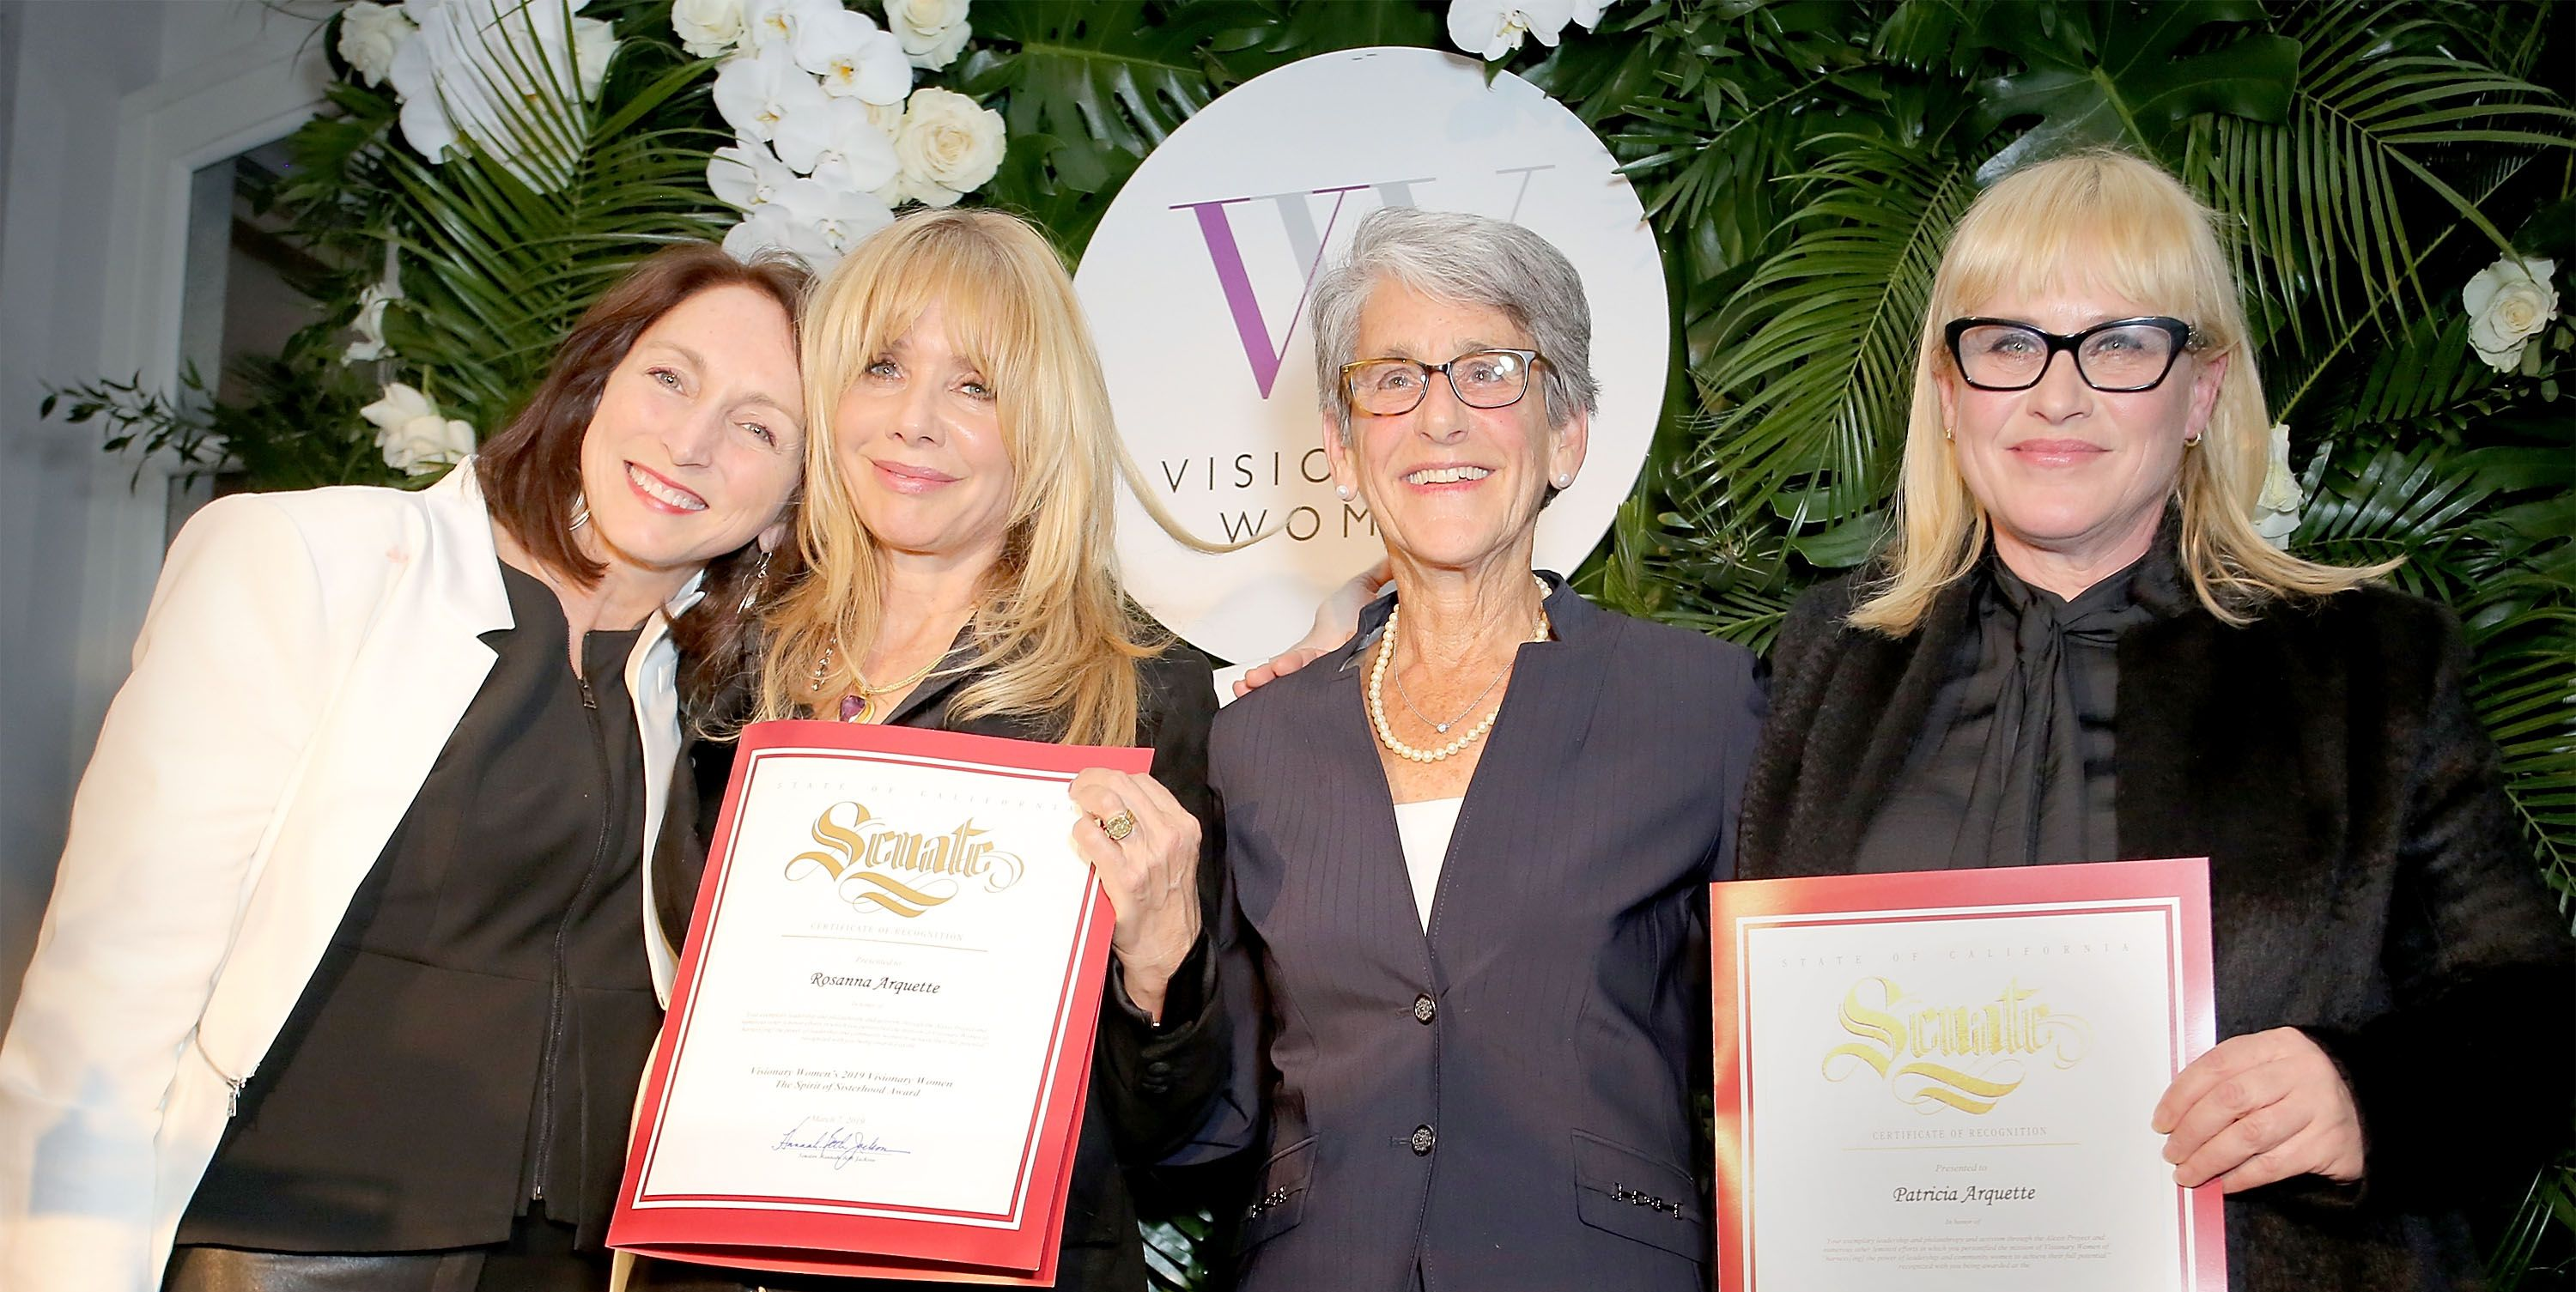 On March 7, in celebration of International Women's Day, Visionary Women honored Patricia and Rosanna Arquette as Sisterhood Visionaries of the Year. Sponsored by Cartier, it was the second annual Visionary Woman Award celebration for the L.A.-based nonprofit, which is dedicated to the empowerment of women and girls.